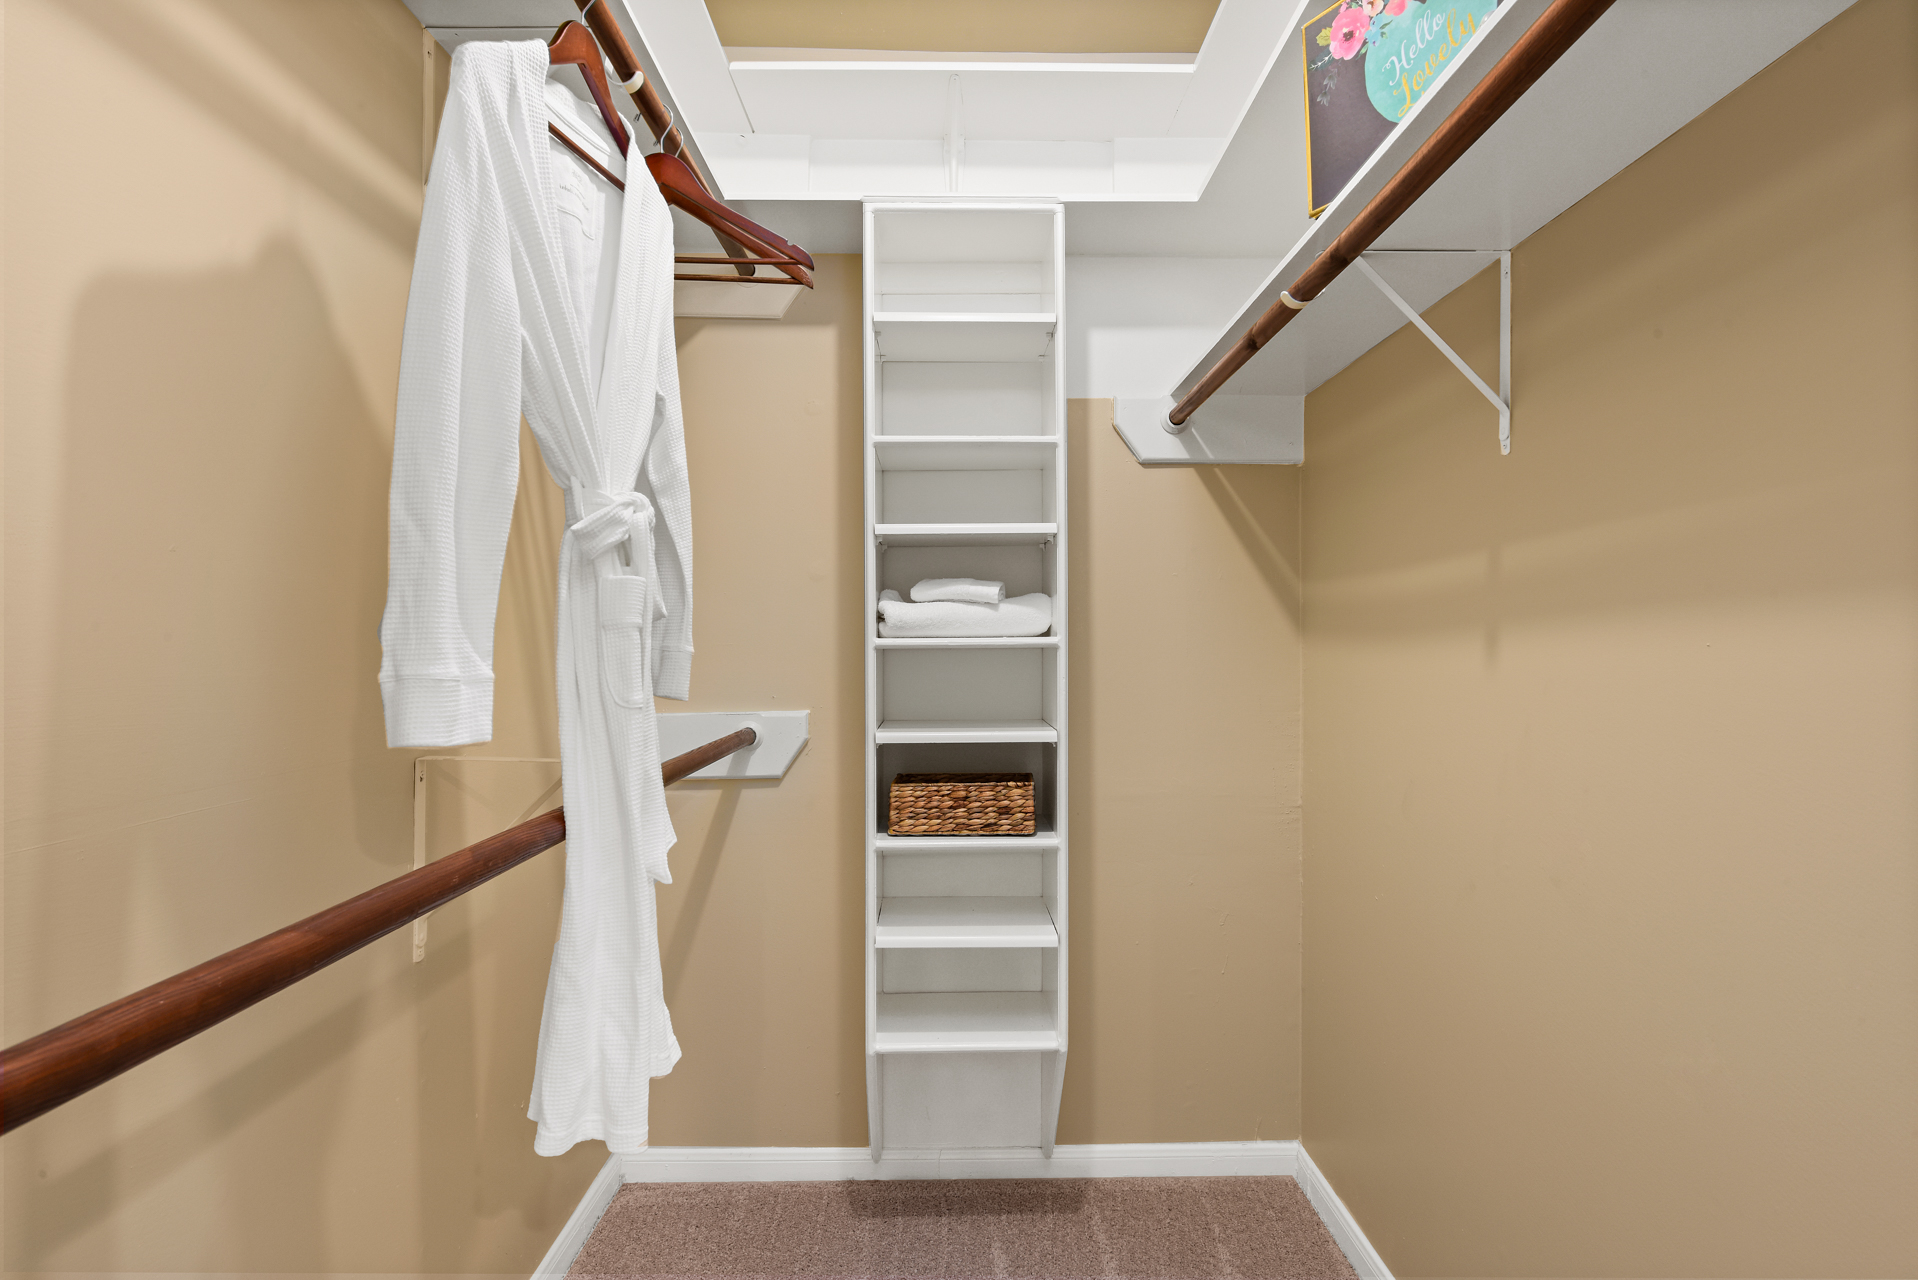 Staging The Nest - Vacant Home Staging - Master Closet